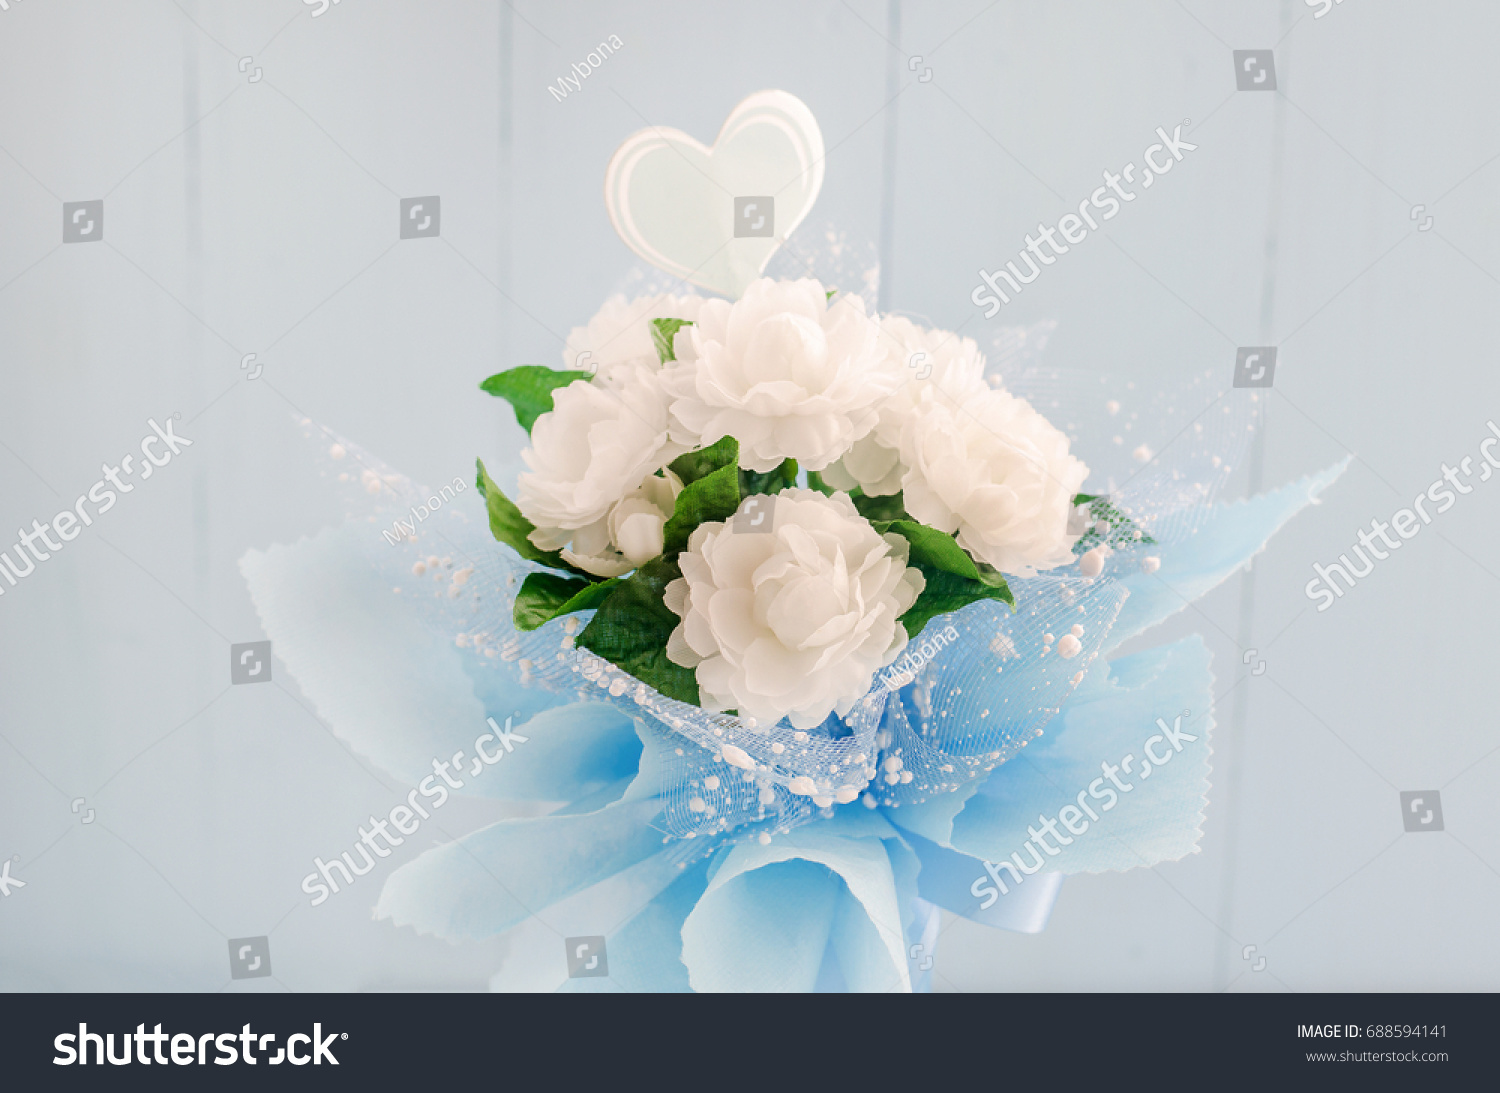 Artificial jasmine flower bouquet blue ribbon stock photo royalty artificial jasmine flower bouquet with blue ribbon bow on white and blue wooden background jasmine izmirmasajfo Image collections